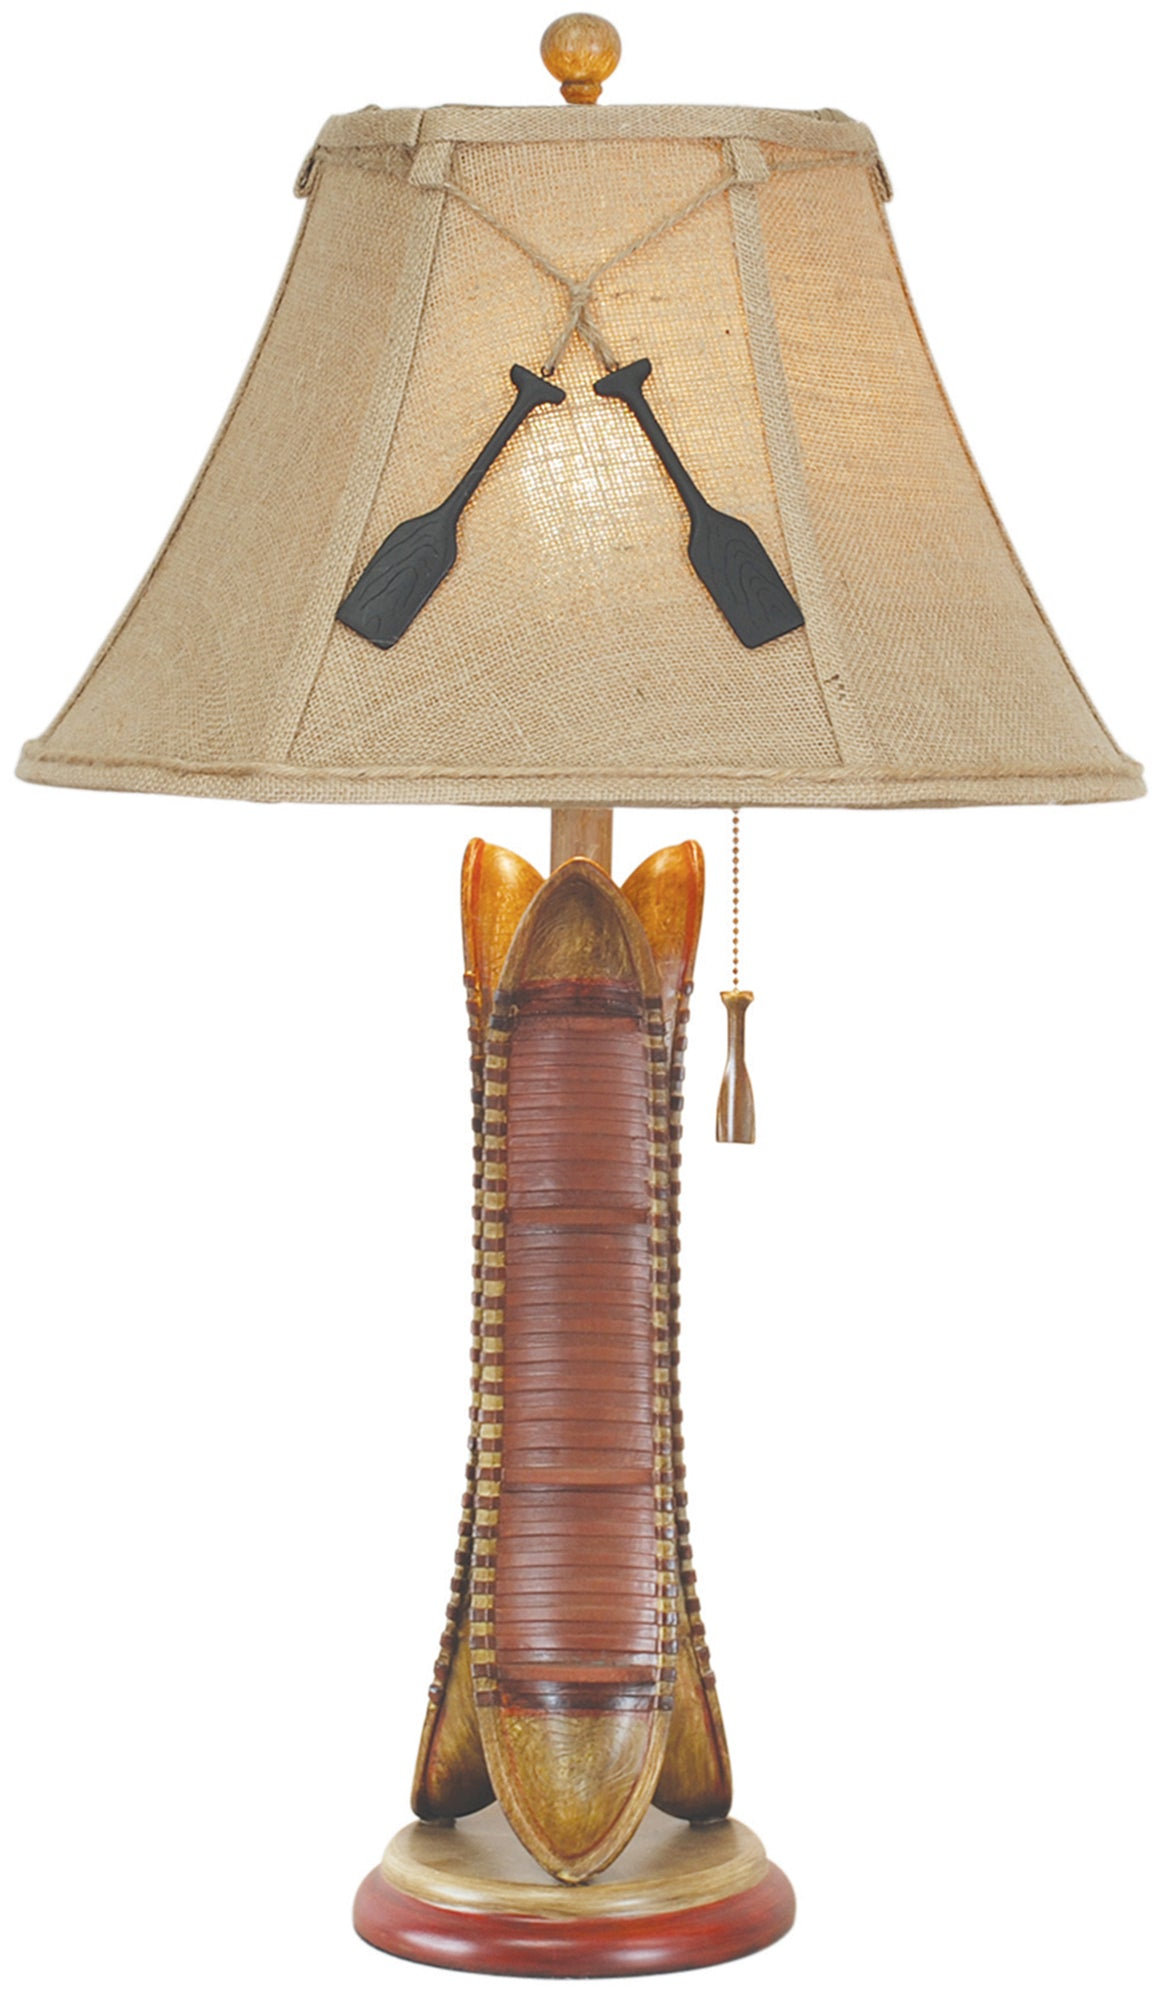 CL1766S -  CANOE TABLE LAMP by Vintage Direct Lamps - ThunderHorseCabin.com